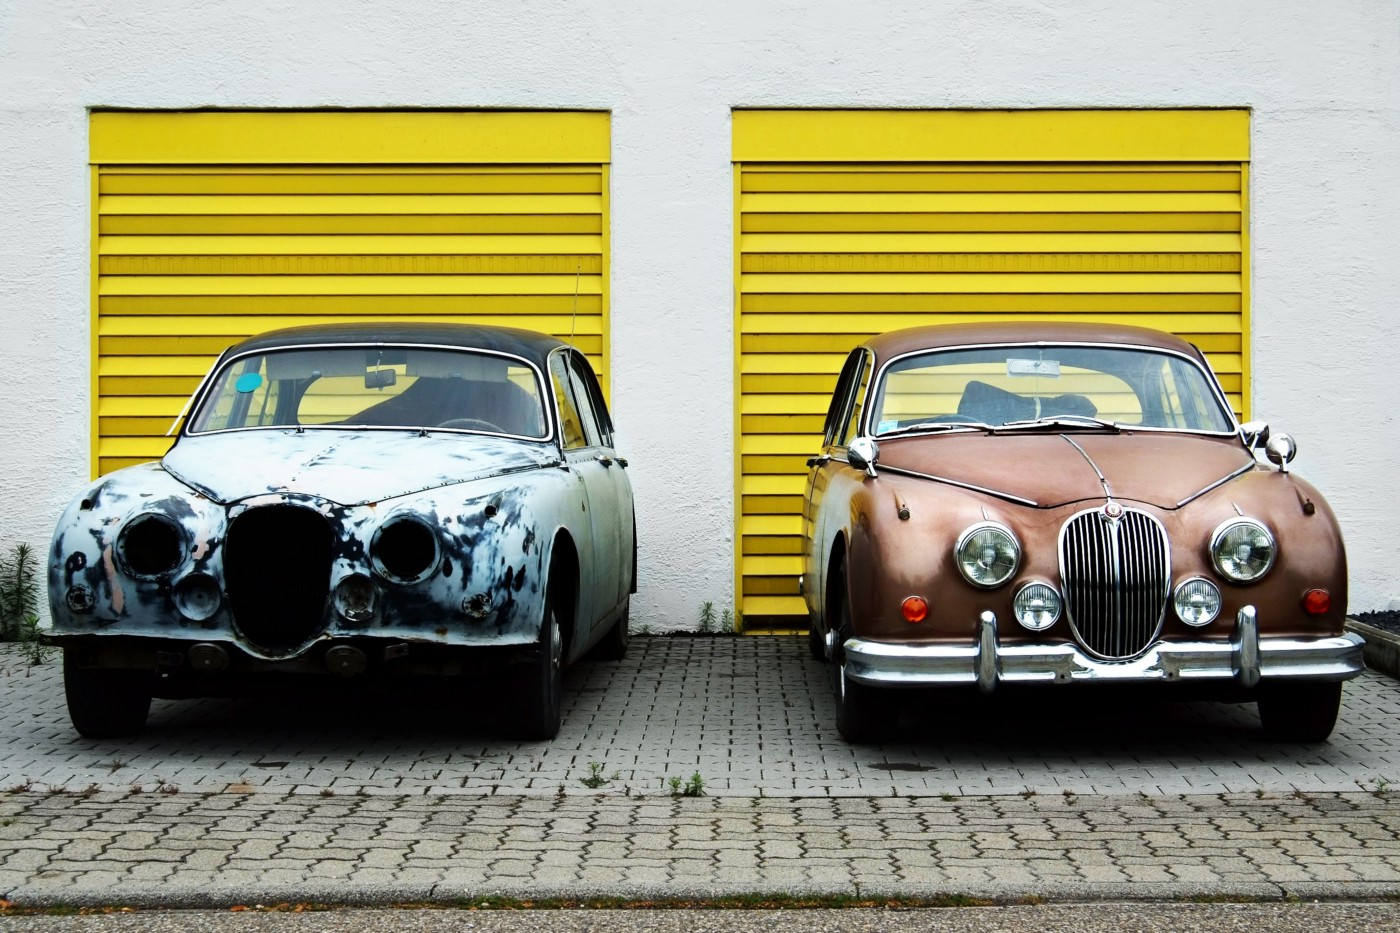 Two car side by side in front of yellow doors. Left car is old and dilapidated. Right car is a gorgeous classic.